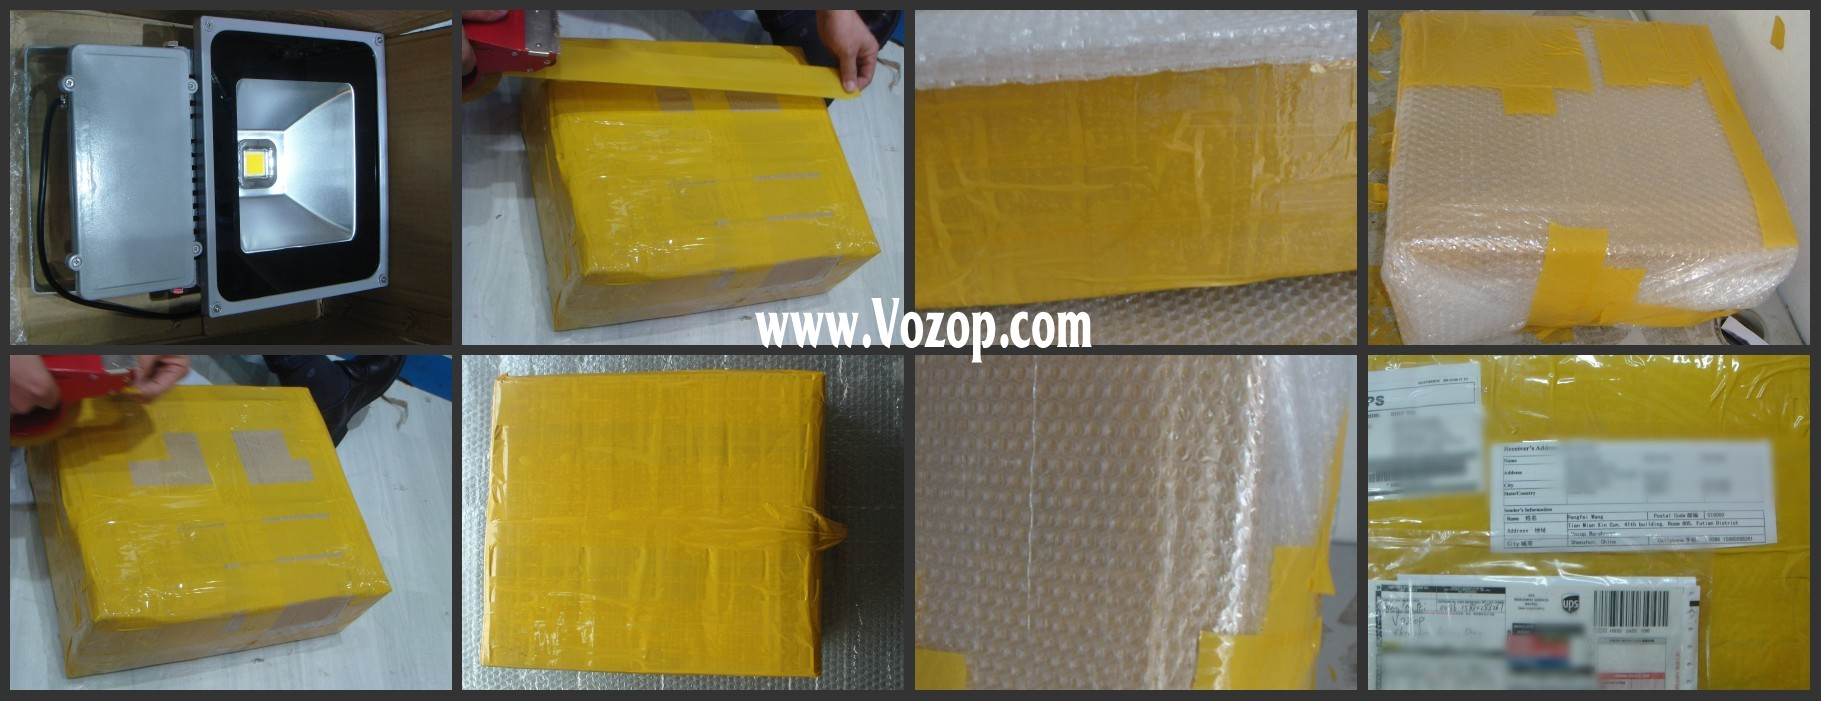 100W_Waterproof_High_Power_LED_Flood_Light_Packing